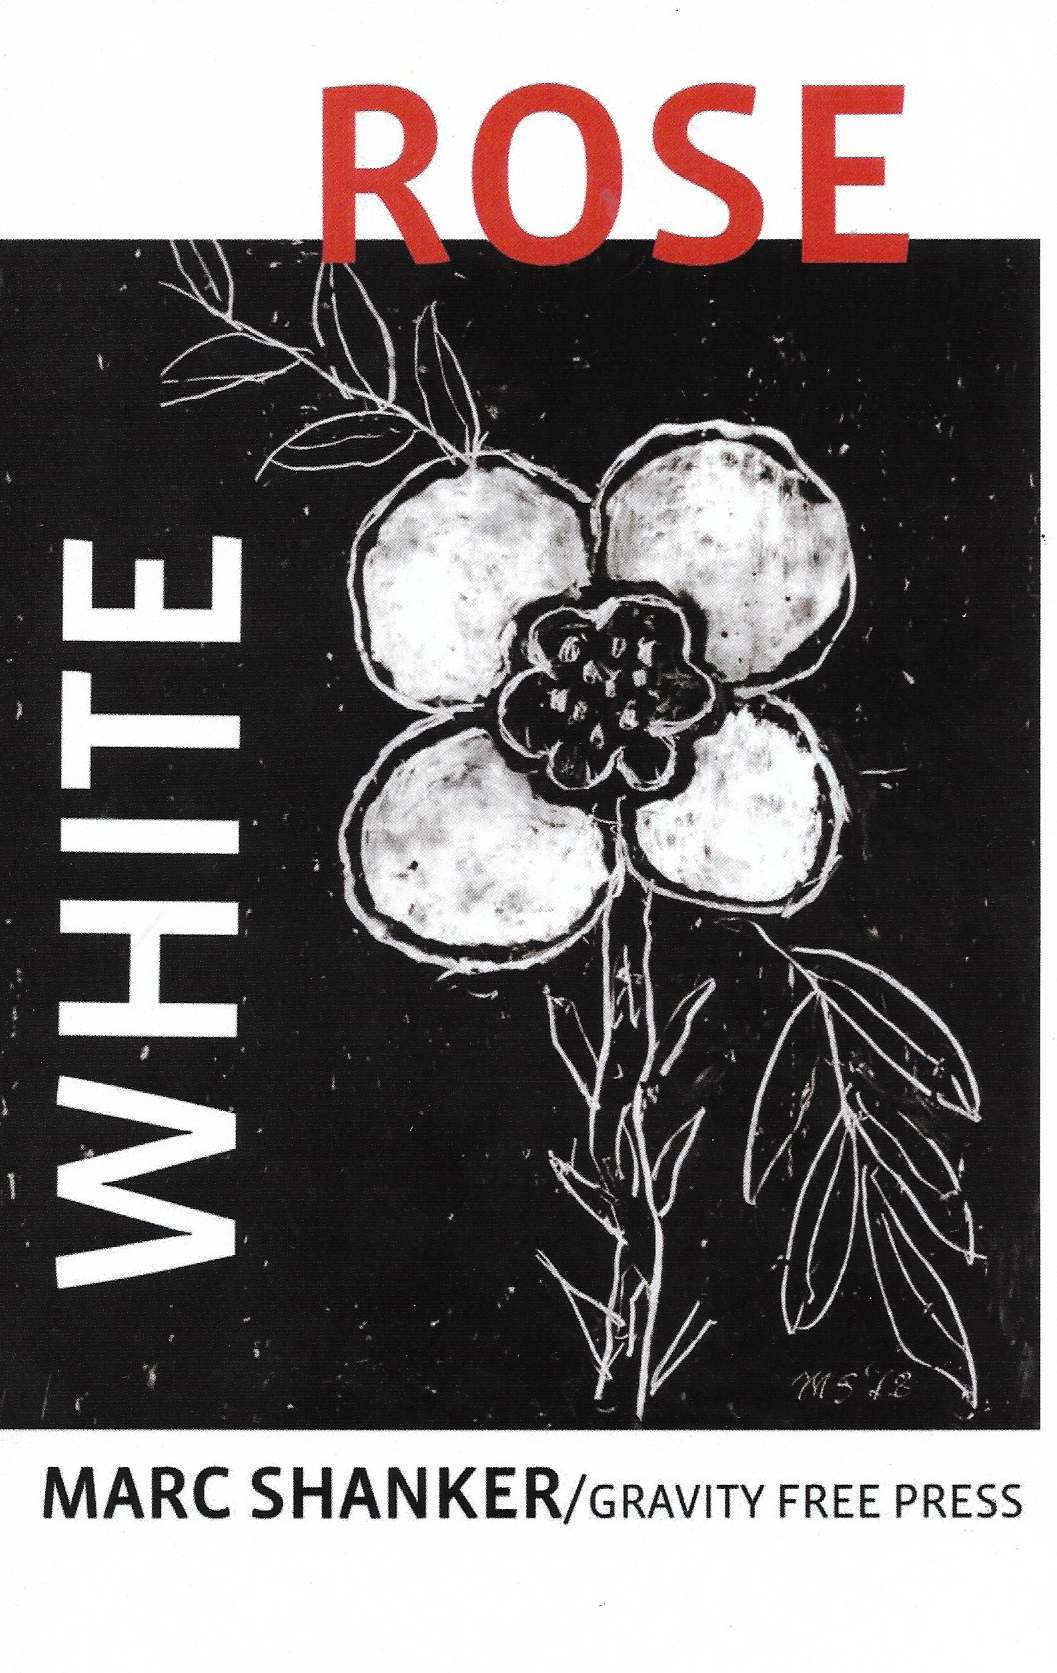 White Rose, 2018.  The book pays homage to the White Rose movement, who helped defeat Nazi Germany through humanitarian resistance and solidarity. 16 pages.  $15 (Incl. mailing in the US)